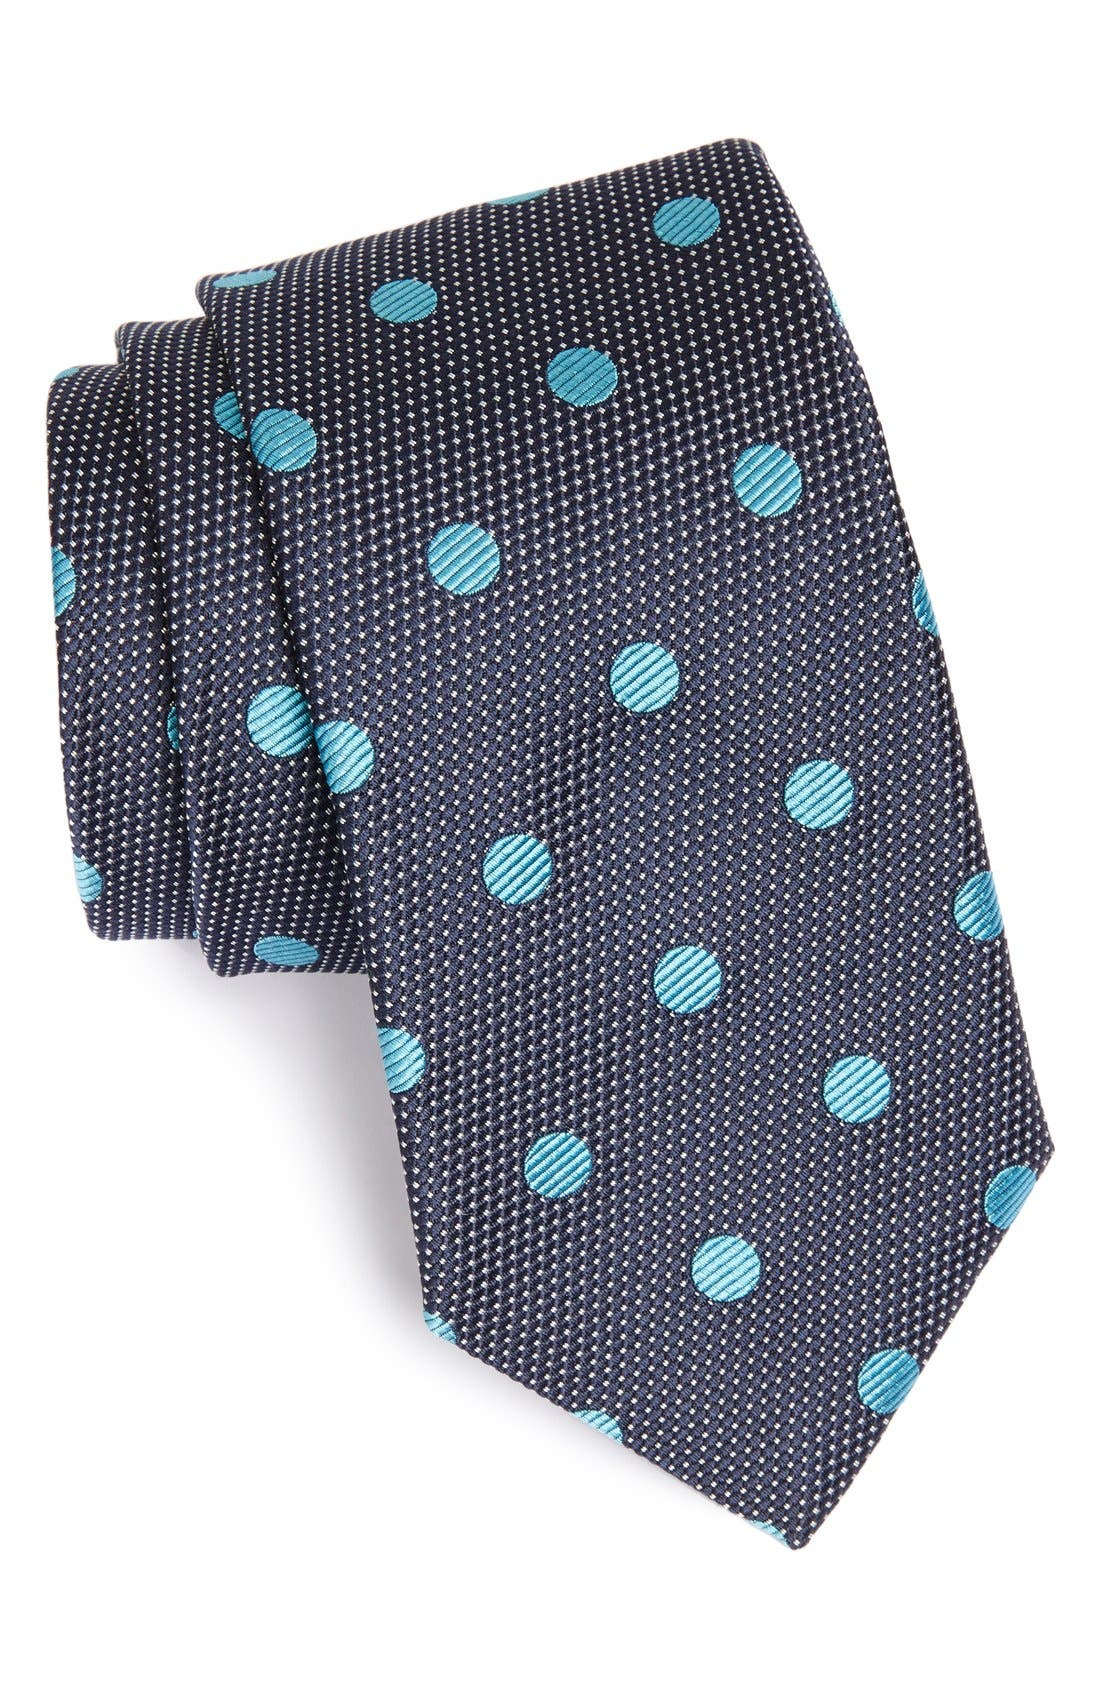 Alternate Image 1 Selected - Samuelsohn Woven Silk Tie